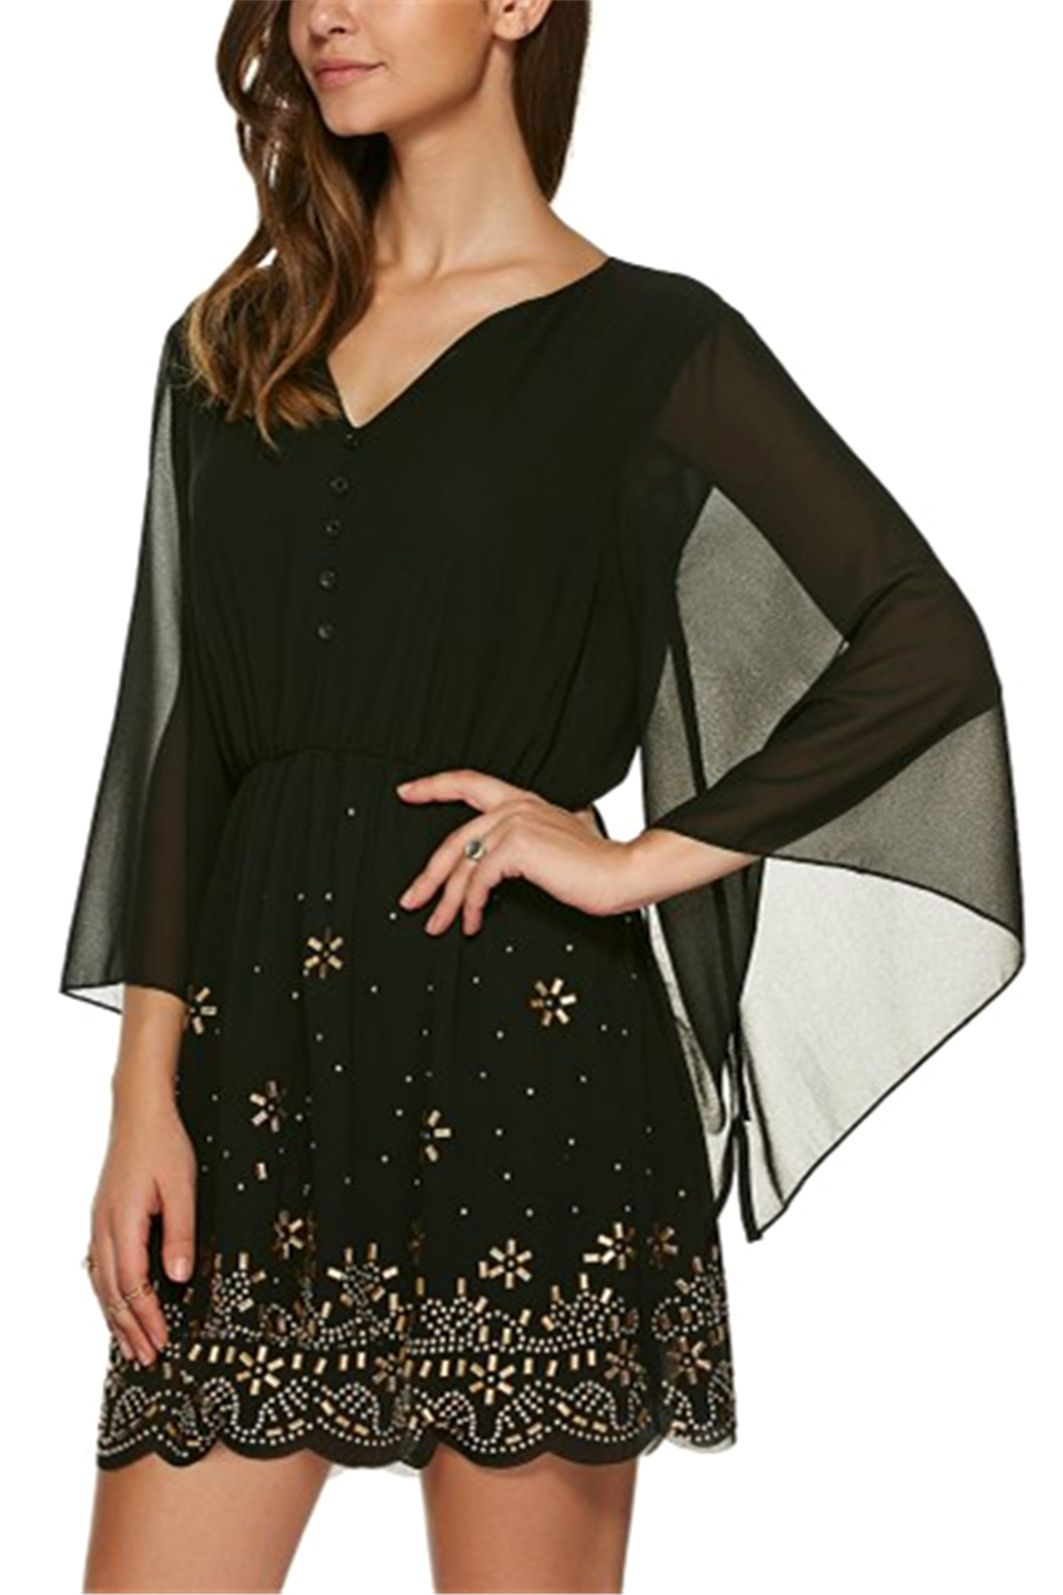 V neck sleeve rhinestone dress black xl sleeved dress